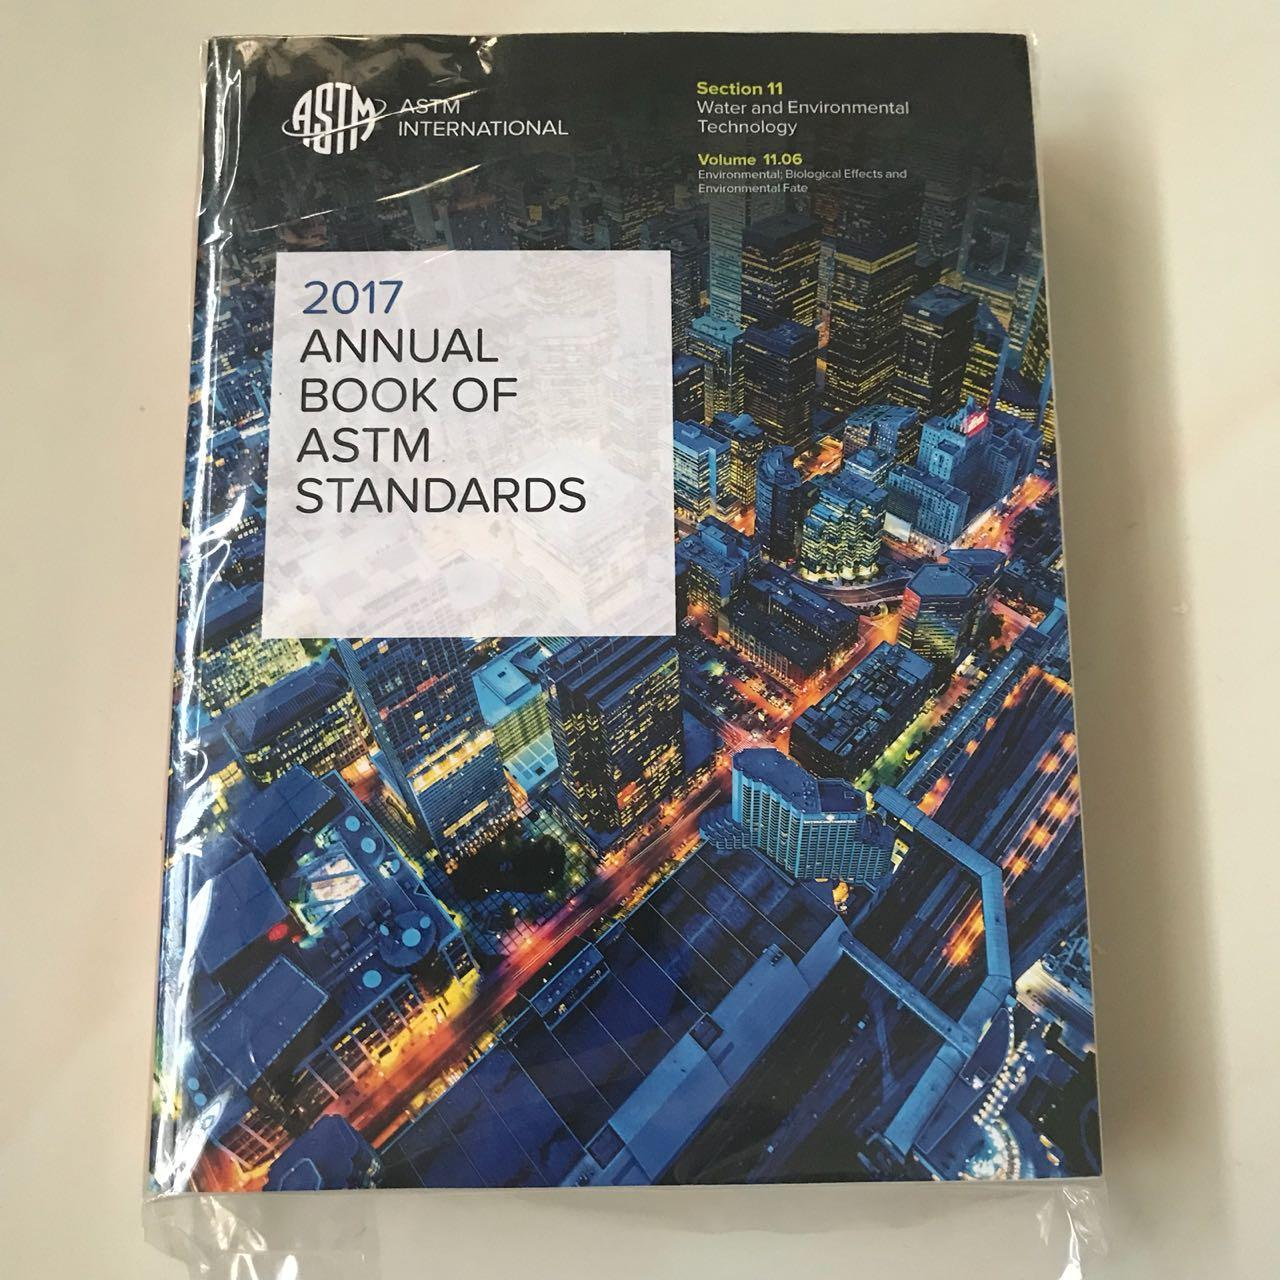 ASTM Annual Book Of Standards 2017 Vol 11.06 - Water and Environmental Technology